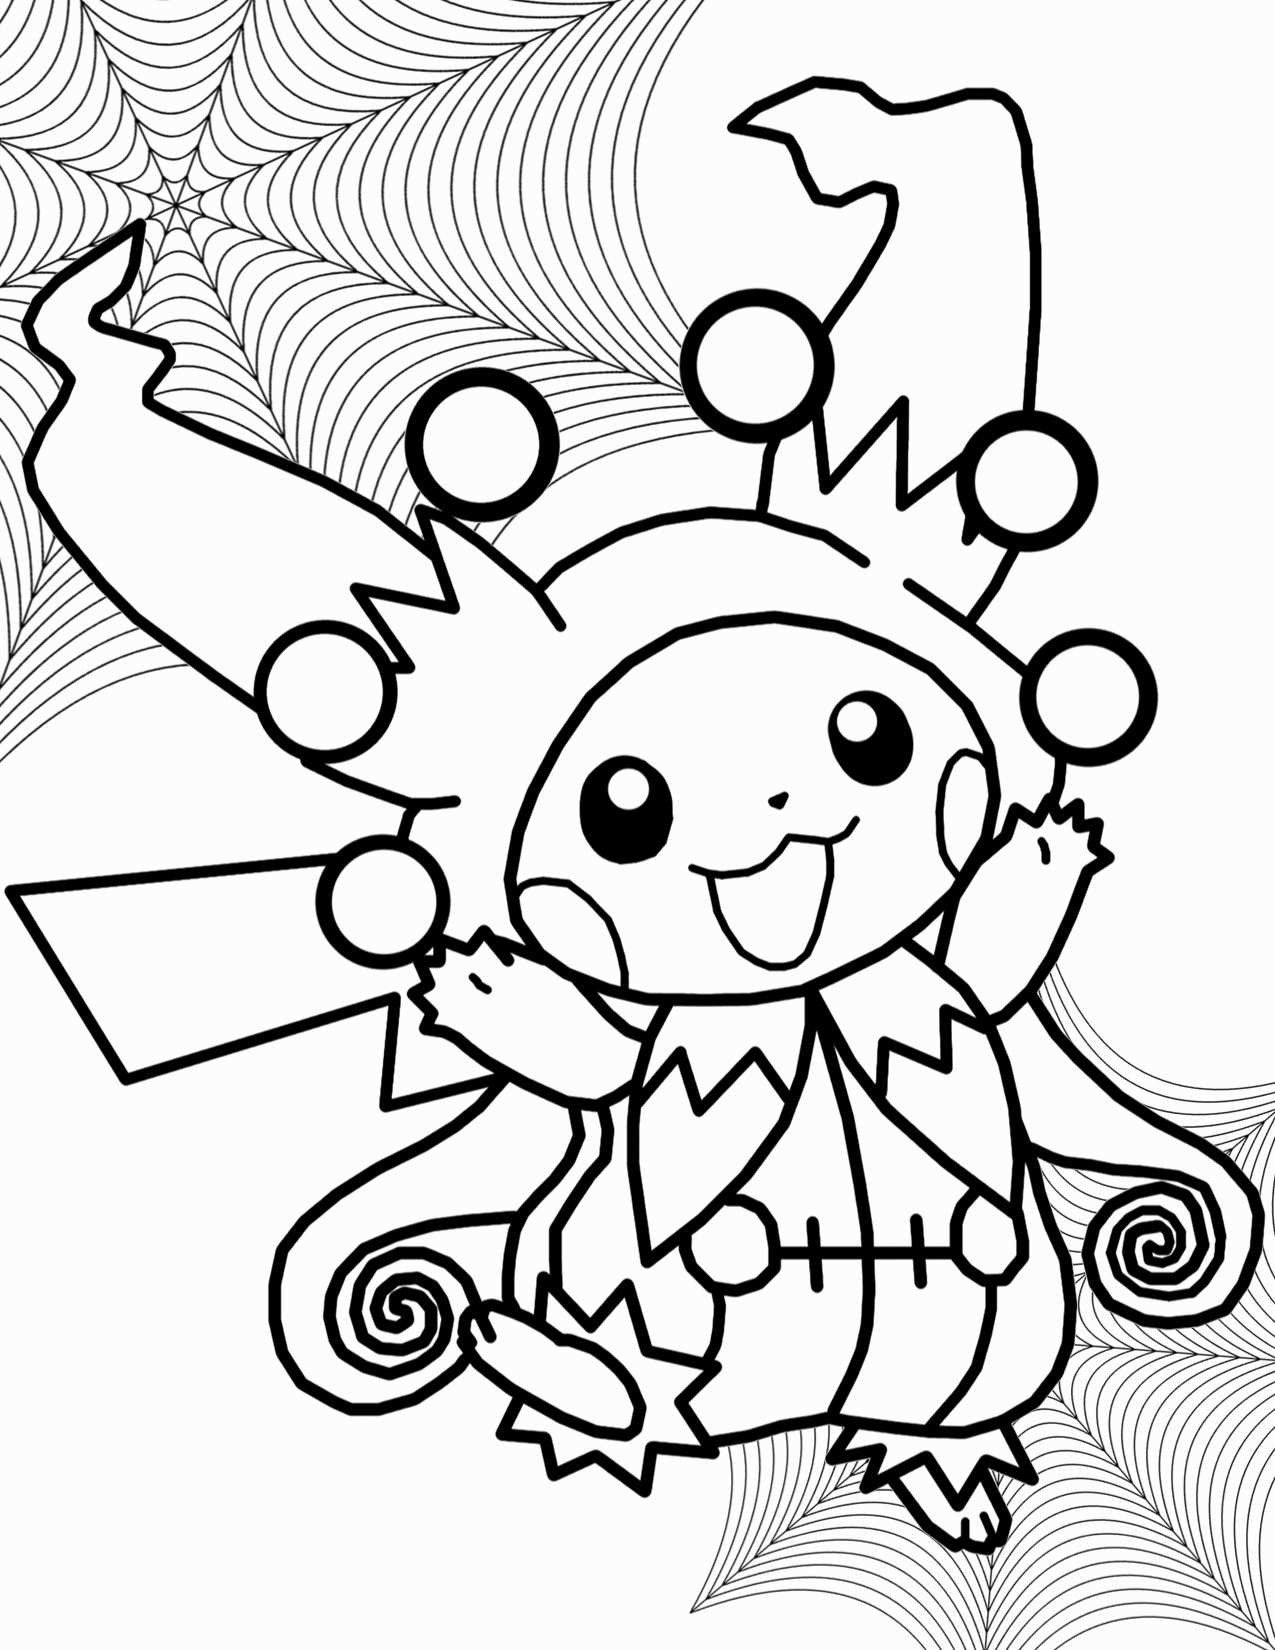 Pokemon Eevee Evolutions Coloring Pages  Collection 16s - Free For kids